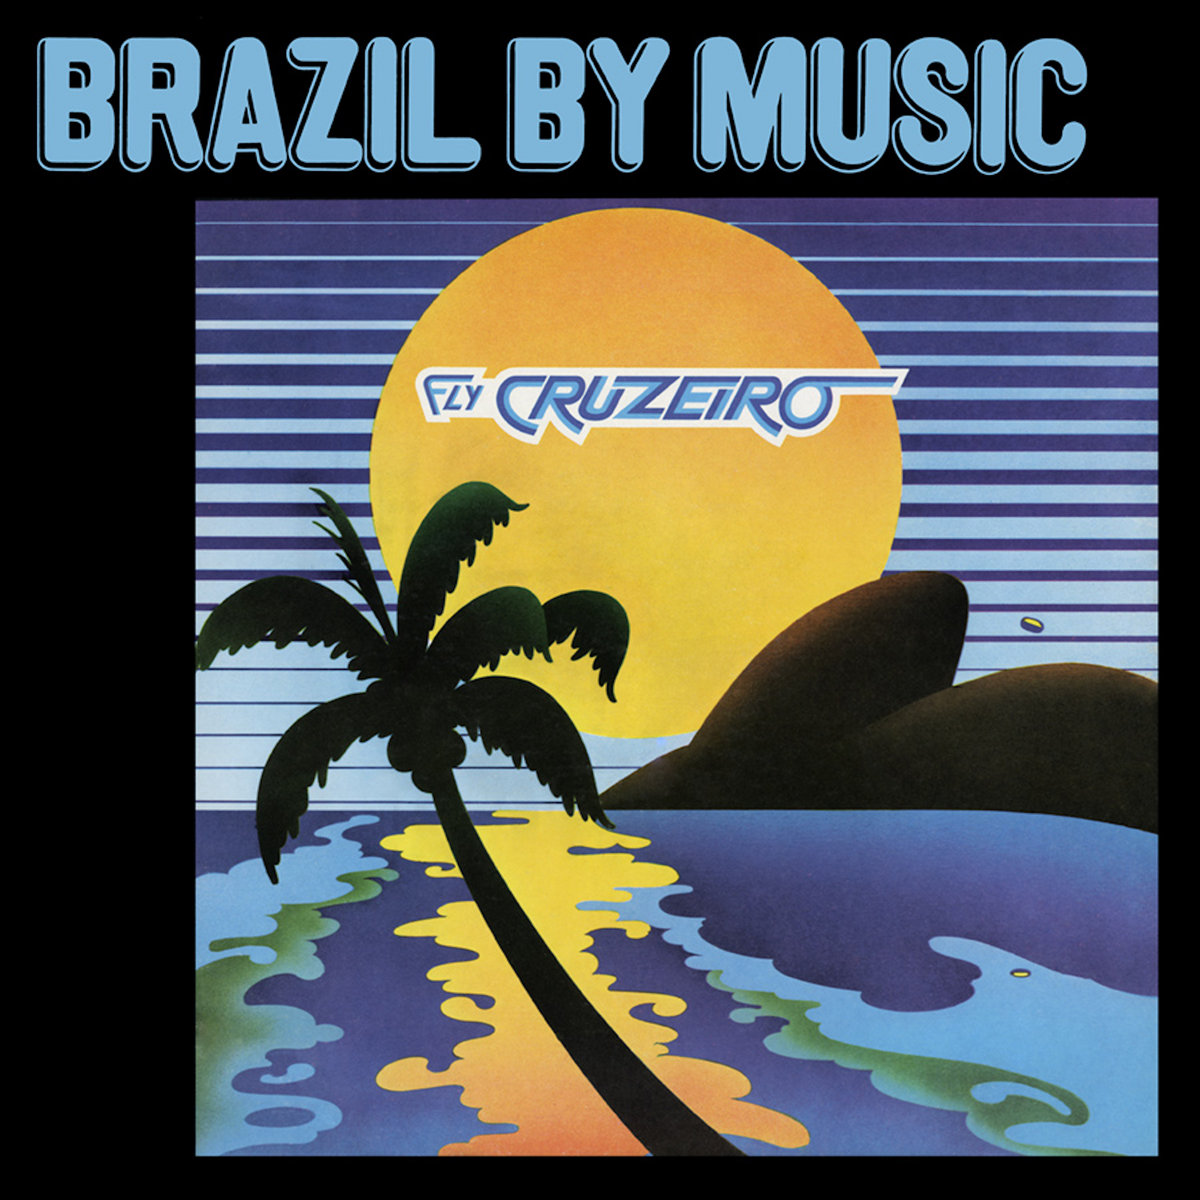 a1471081684_10 Marcos Valle & Azymut – Fly Cruzeiro (1972)